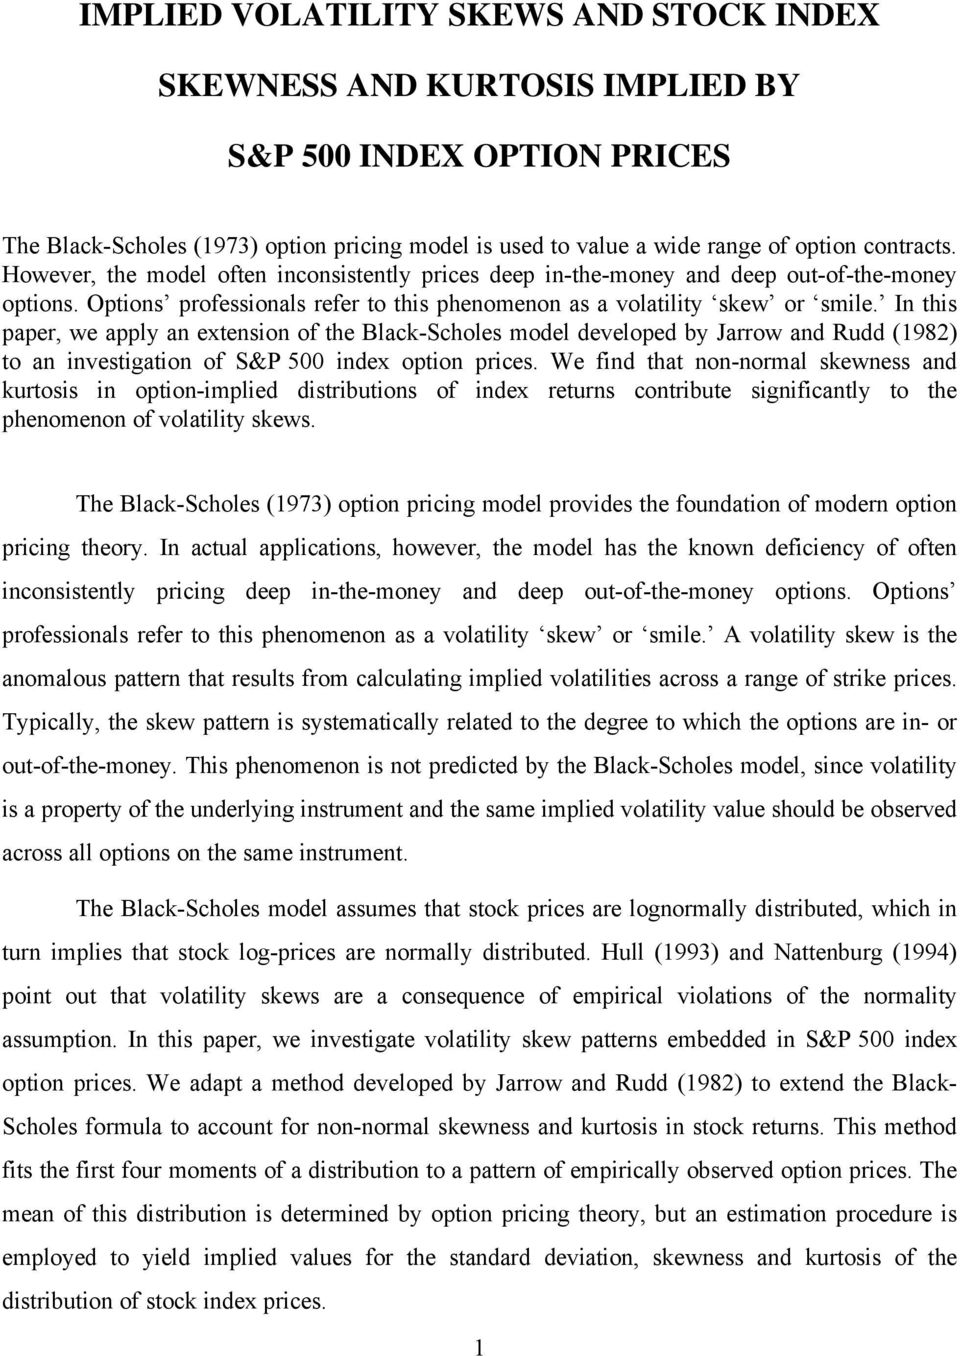 In this paper, we apply an extension of the Black-Scholes model developed by Jarrow and Rudd (198) to an investigation of S&P 500 index option prices.